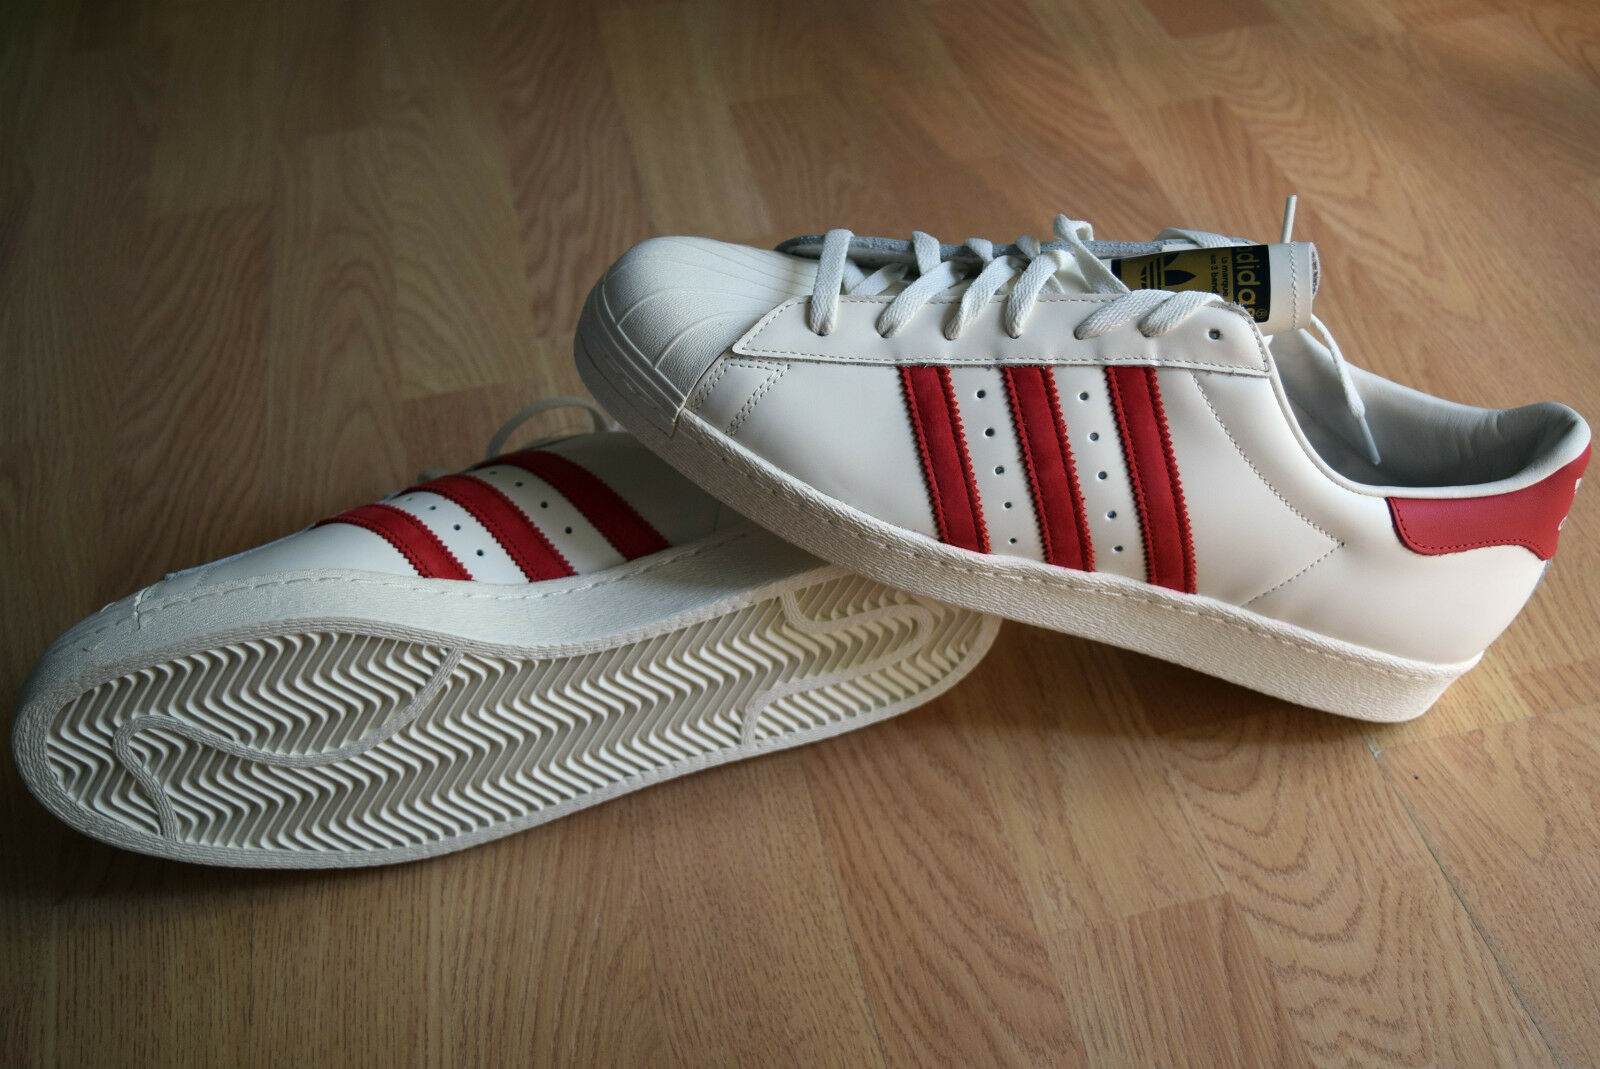 Adidas Superstar 80s DLX 48,5 sTan 49 B35982 rom cAmPuS sTan 48,5 smitH forUm dEcadE 80's 5c3168